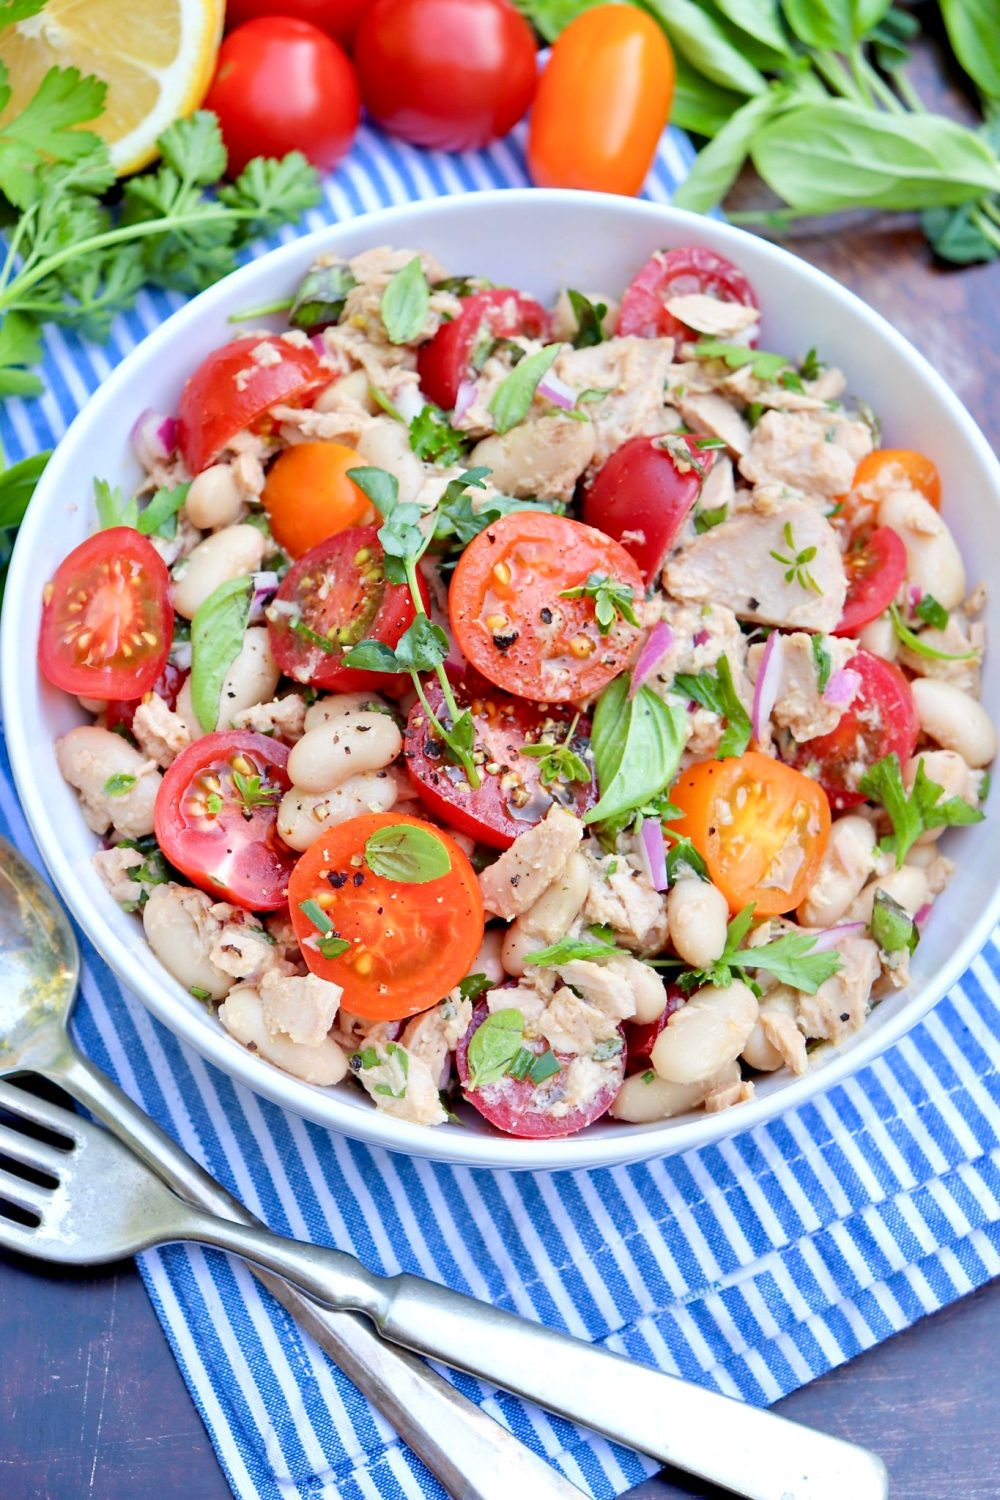 Tuna, Tomato & White Bean Salad-Pantry staples meet sweet tomatoes and ahandful of fresh herbs in this protein-rich, flavor-packed salad. Enjoy it as an easy lunch or pair with an ear of corn, piece of cornbread or a crusty roll for a light but filling dinner. (Leftovers taste great, too!)